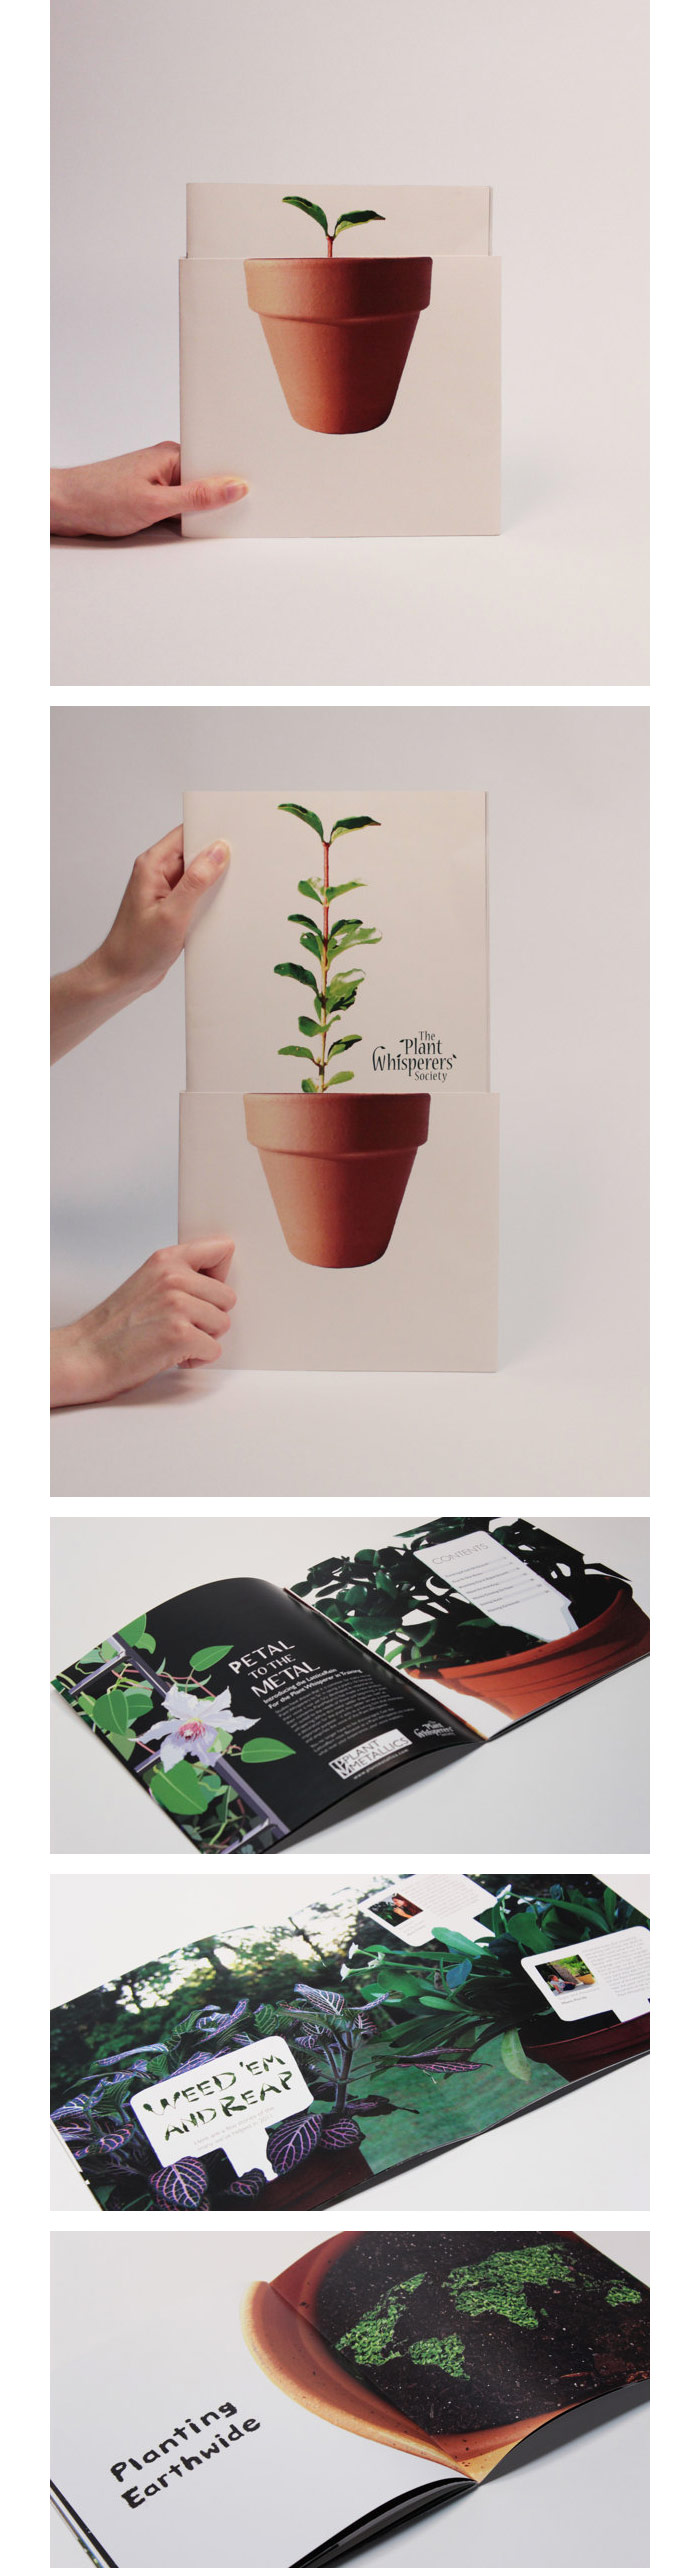 Jenna Russell / Annual Report concept - The Plant Whisperers Society